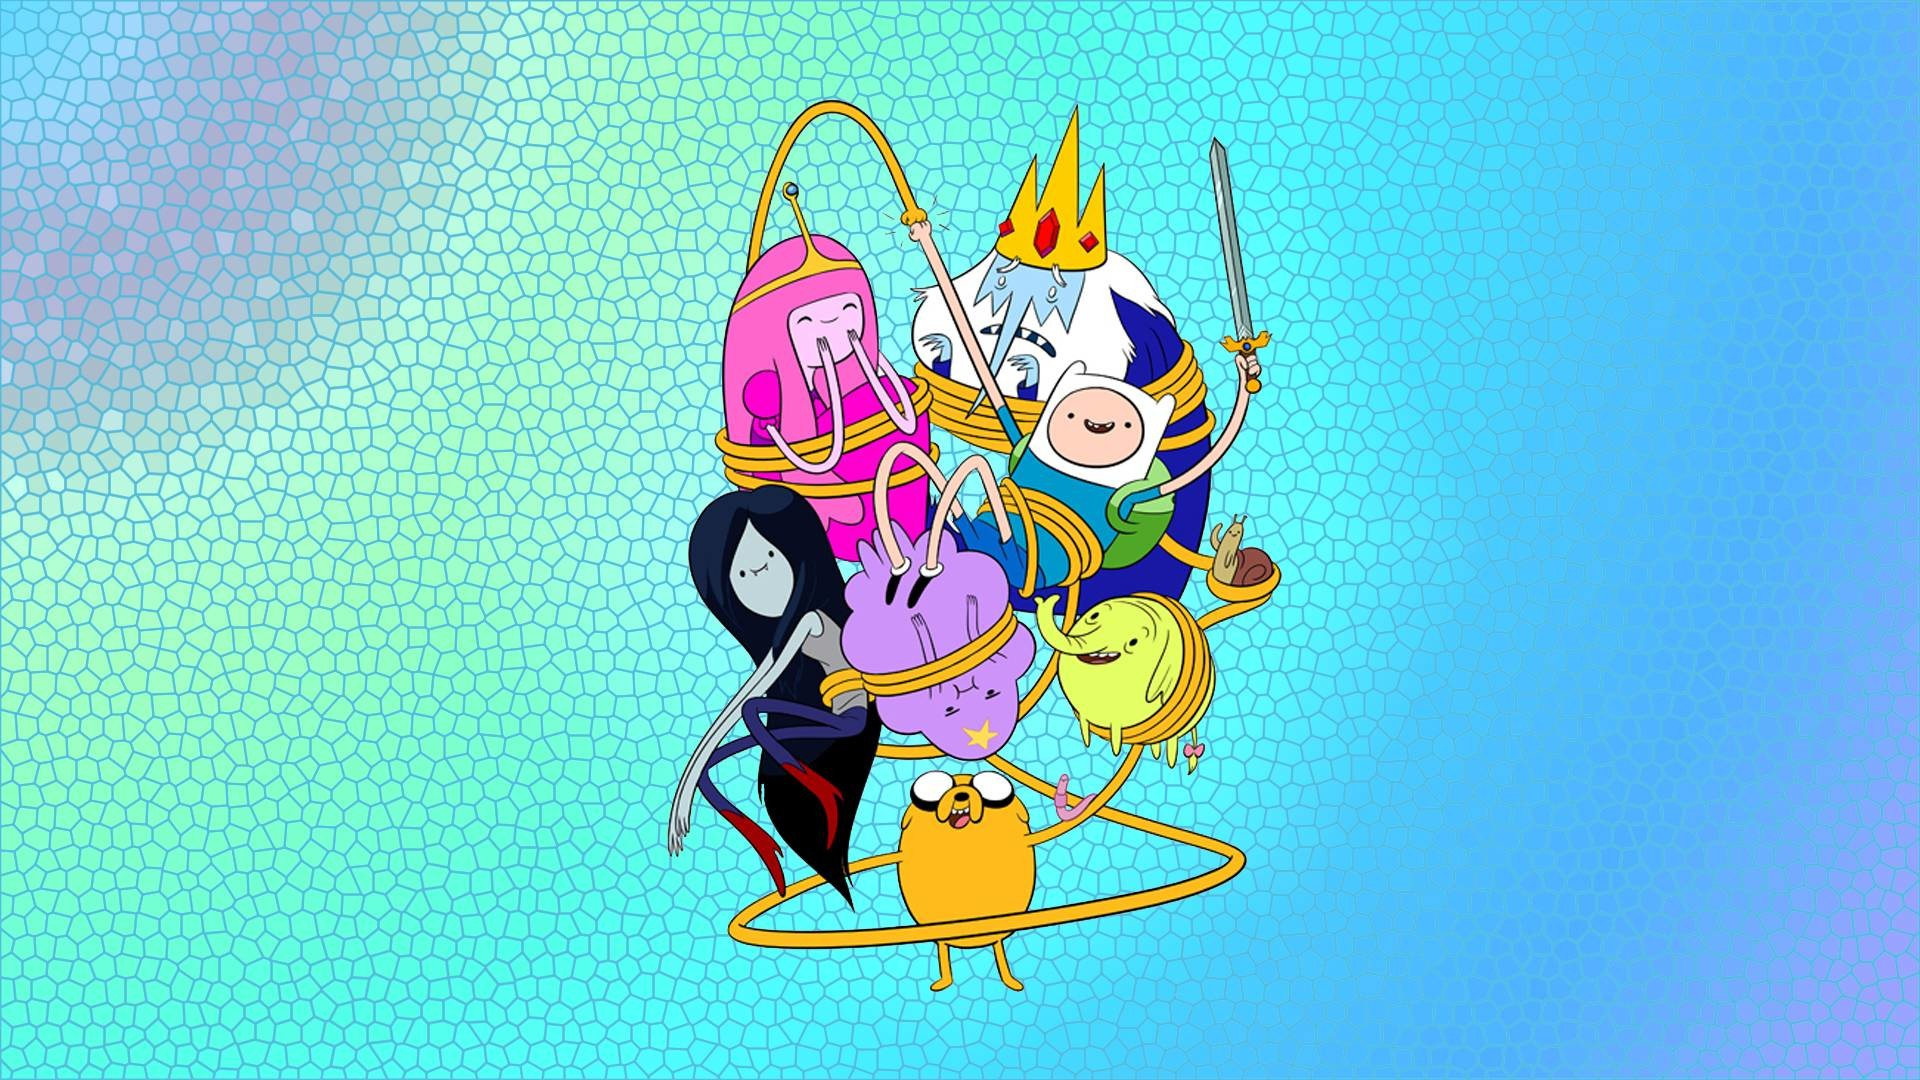 Adventure time wallpapers for desktop 55 images 1920x1080 free protagonistas de adventure time desktop wallpaper la hora thecheapjerseys Choice Image